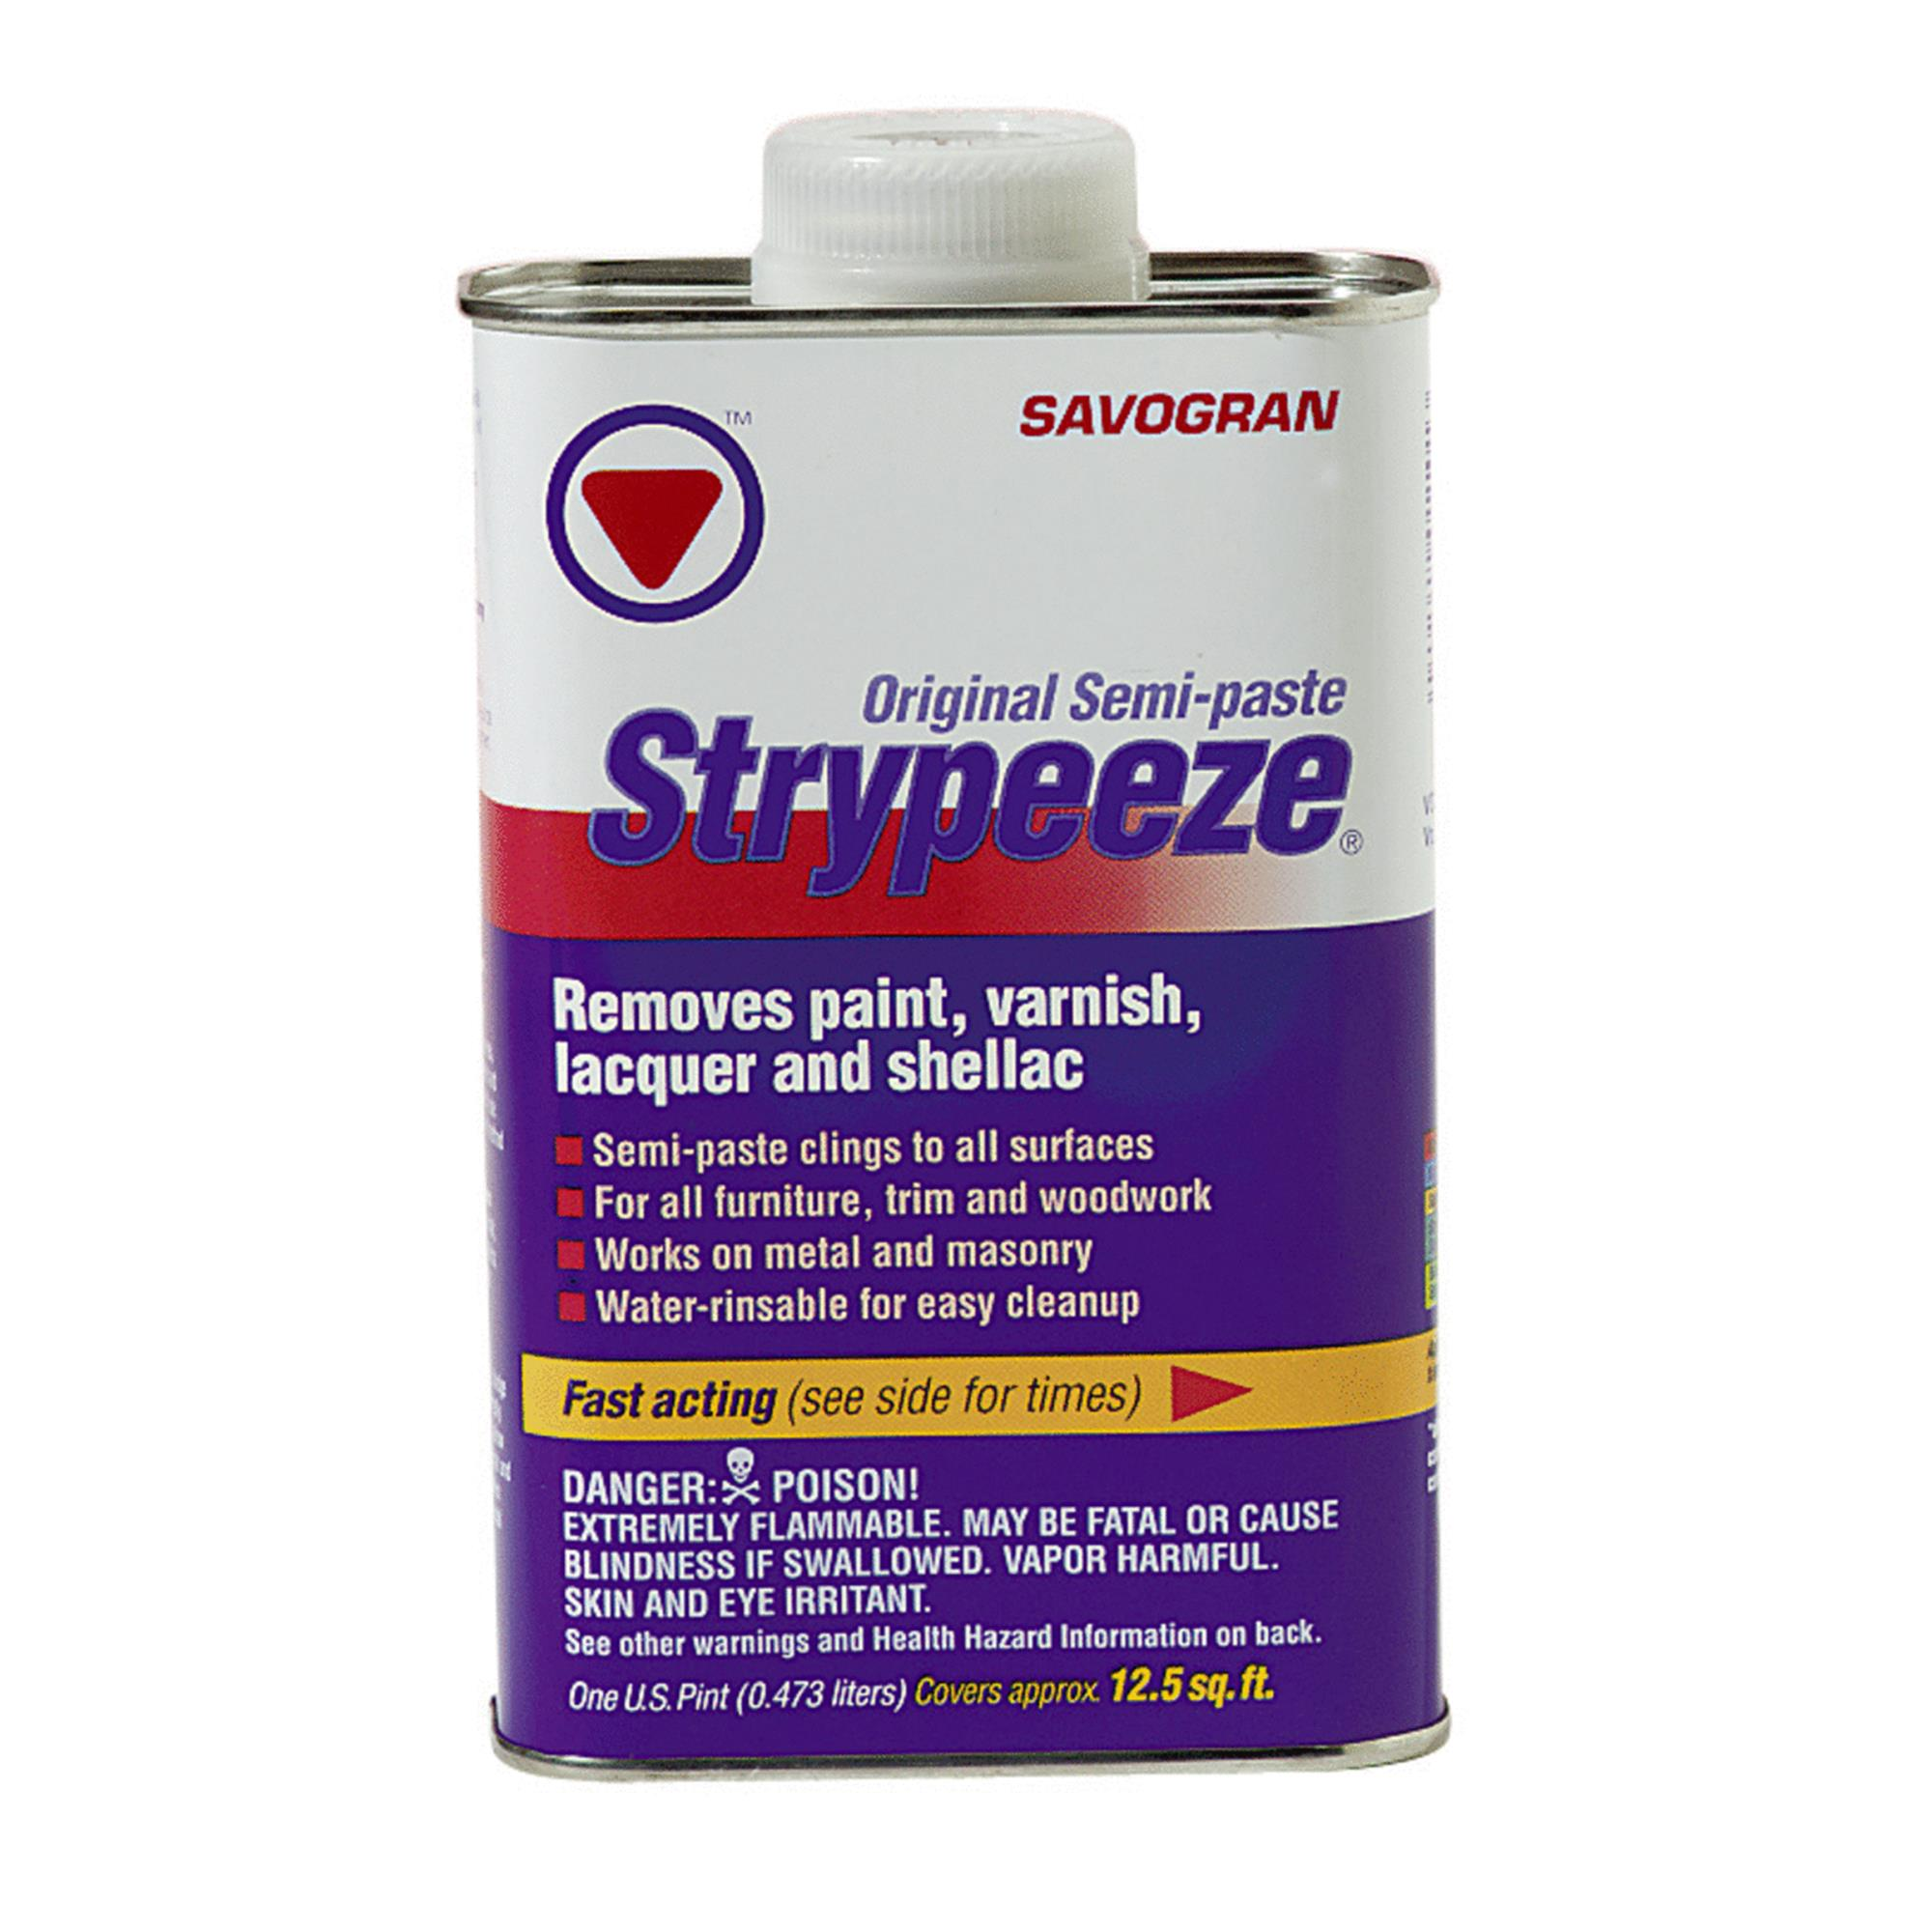 Savogran Strypeeze Paint & Varnish Stripper 1101